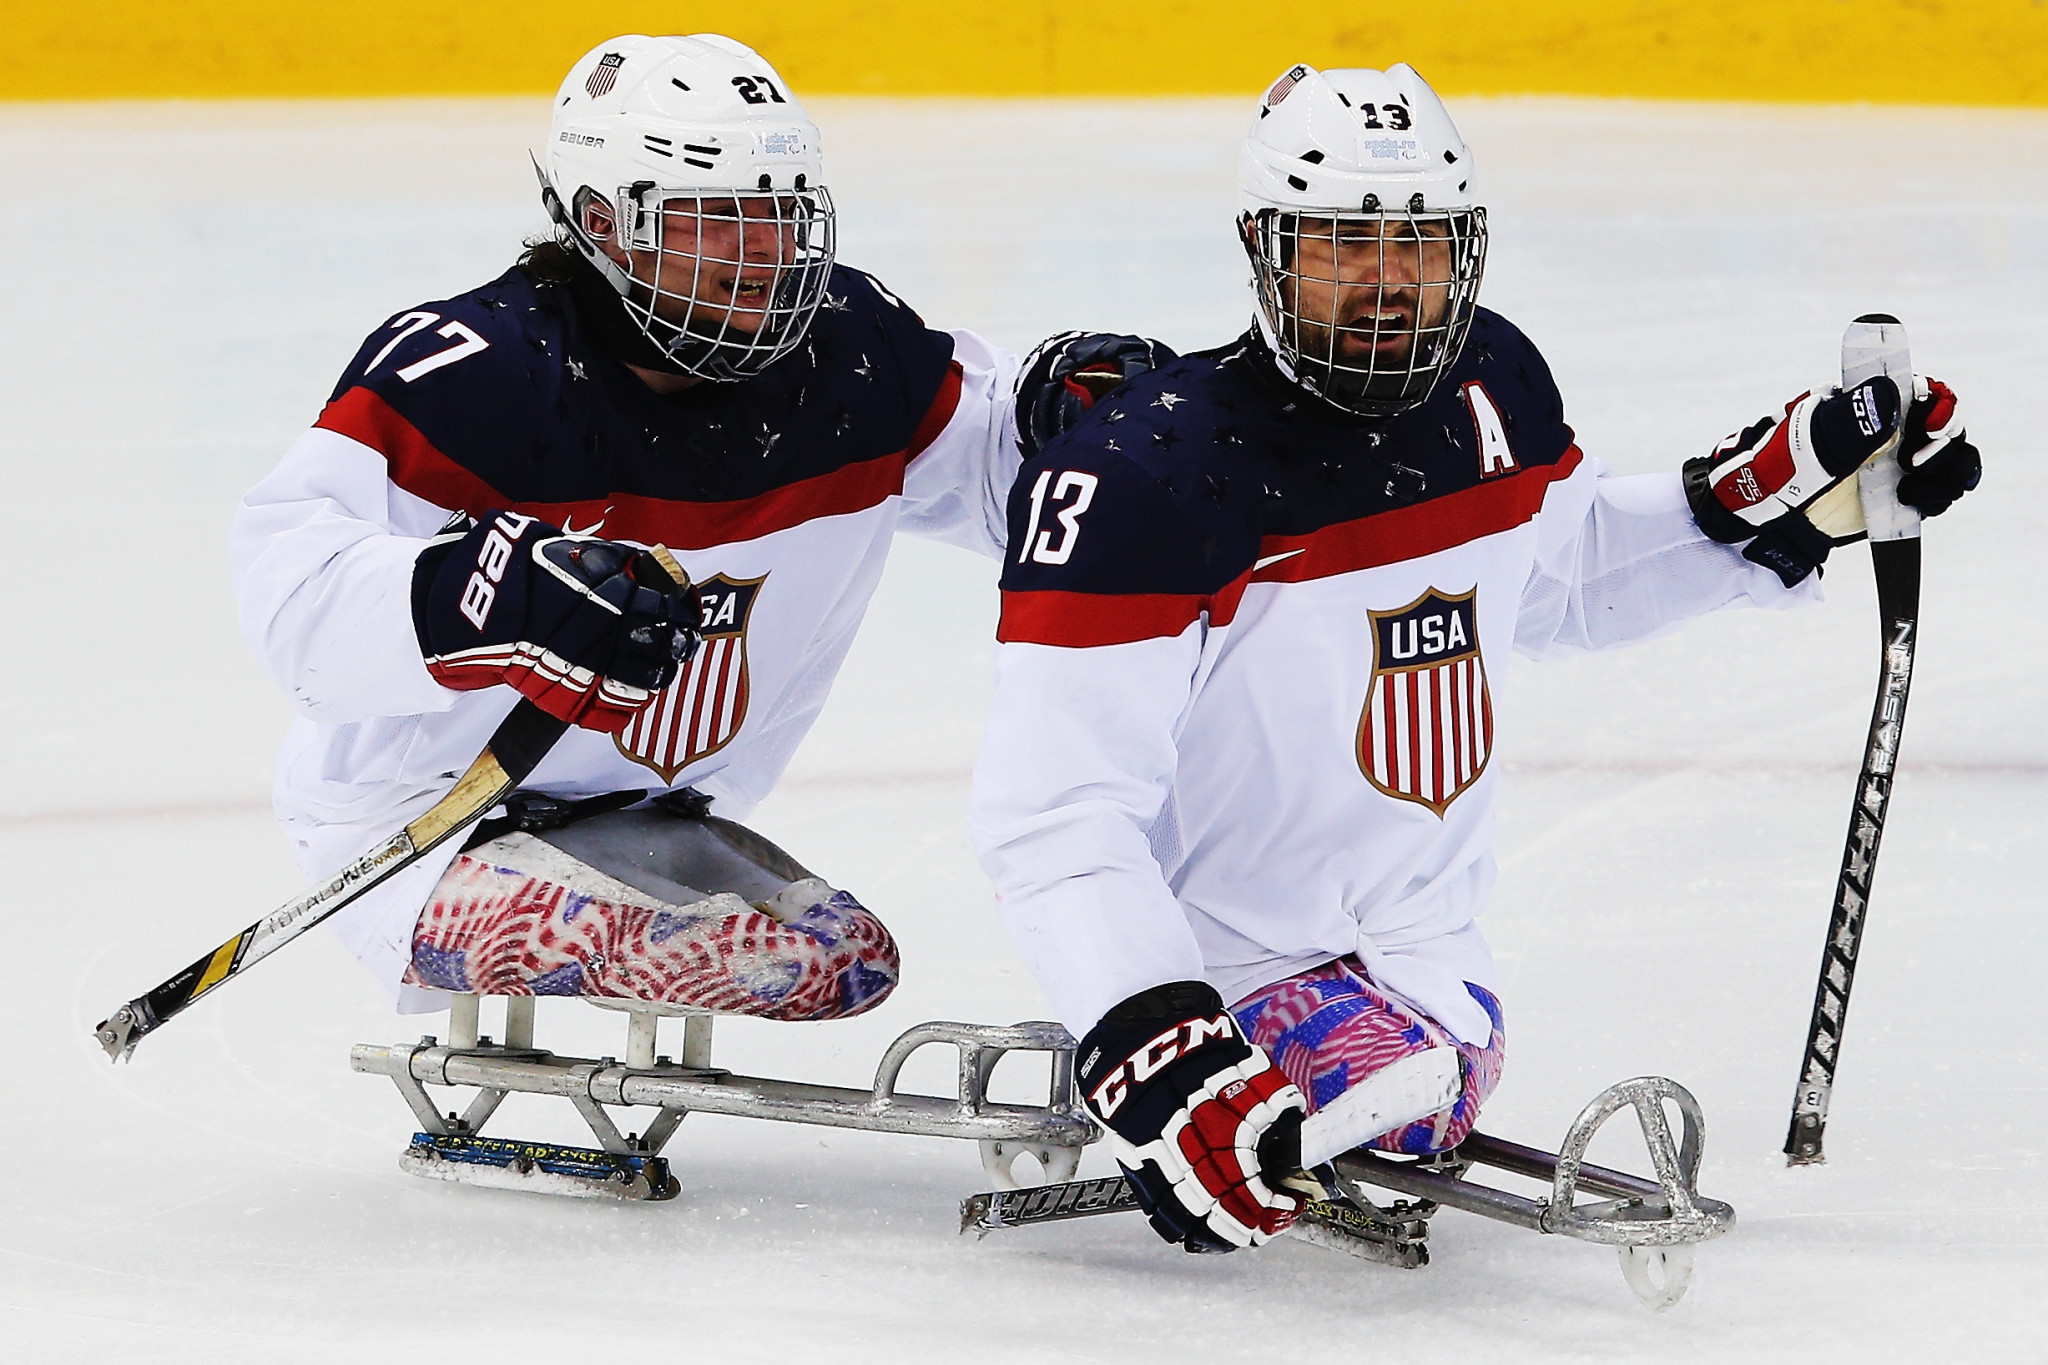 United States retain World Para Ice Hockey Championships title after comfortable win over Canada